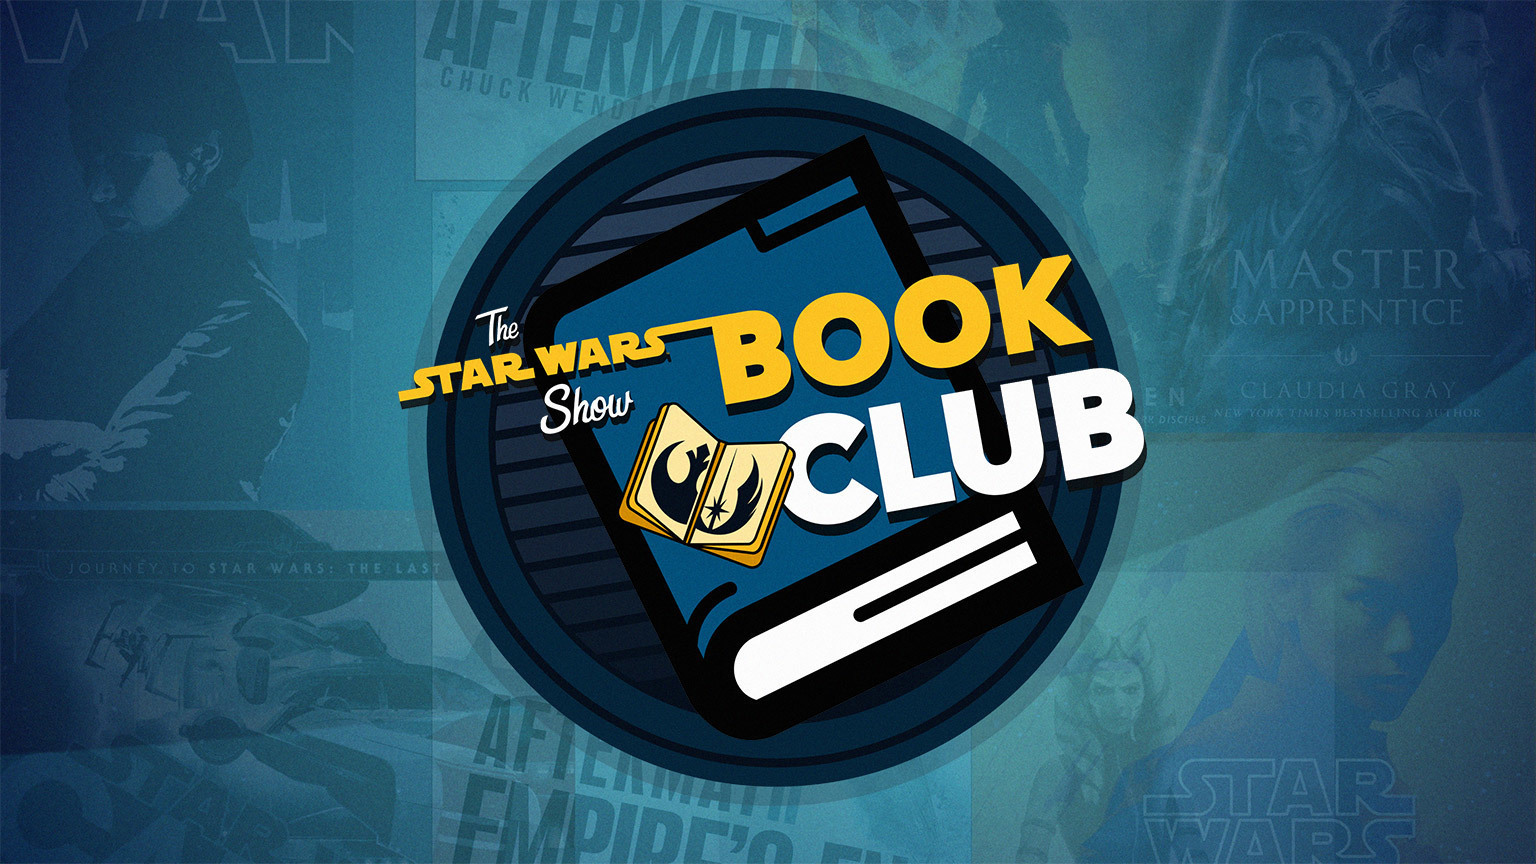 Read Along with The Star Wars Show Book Club